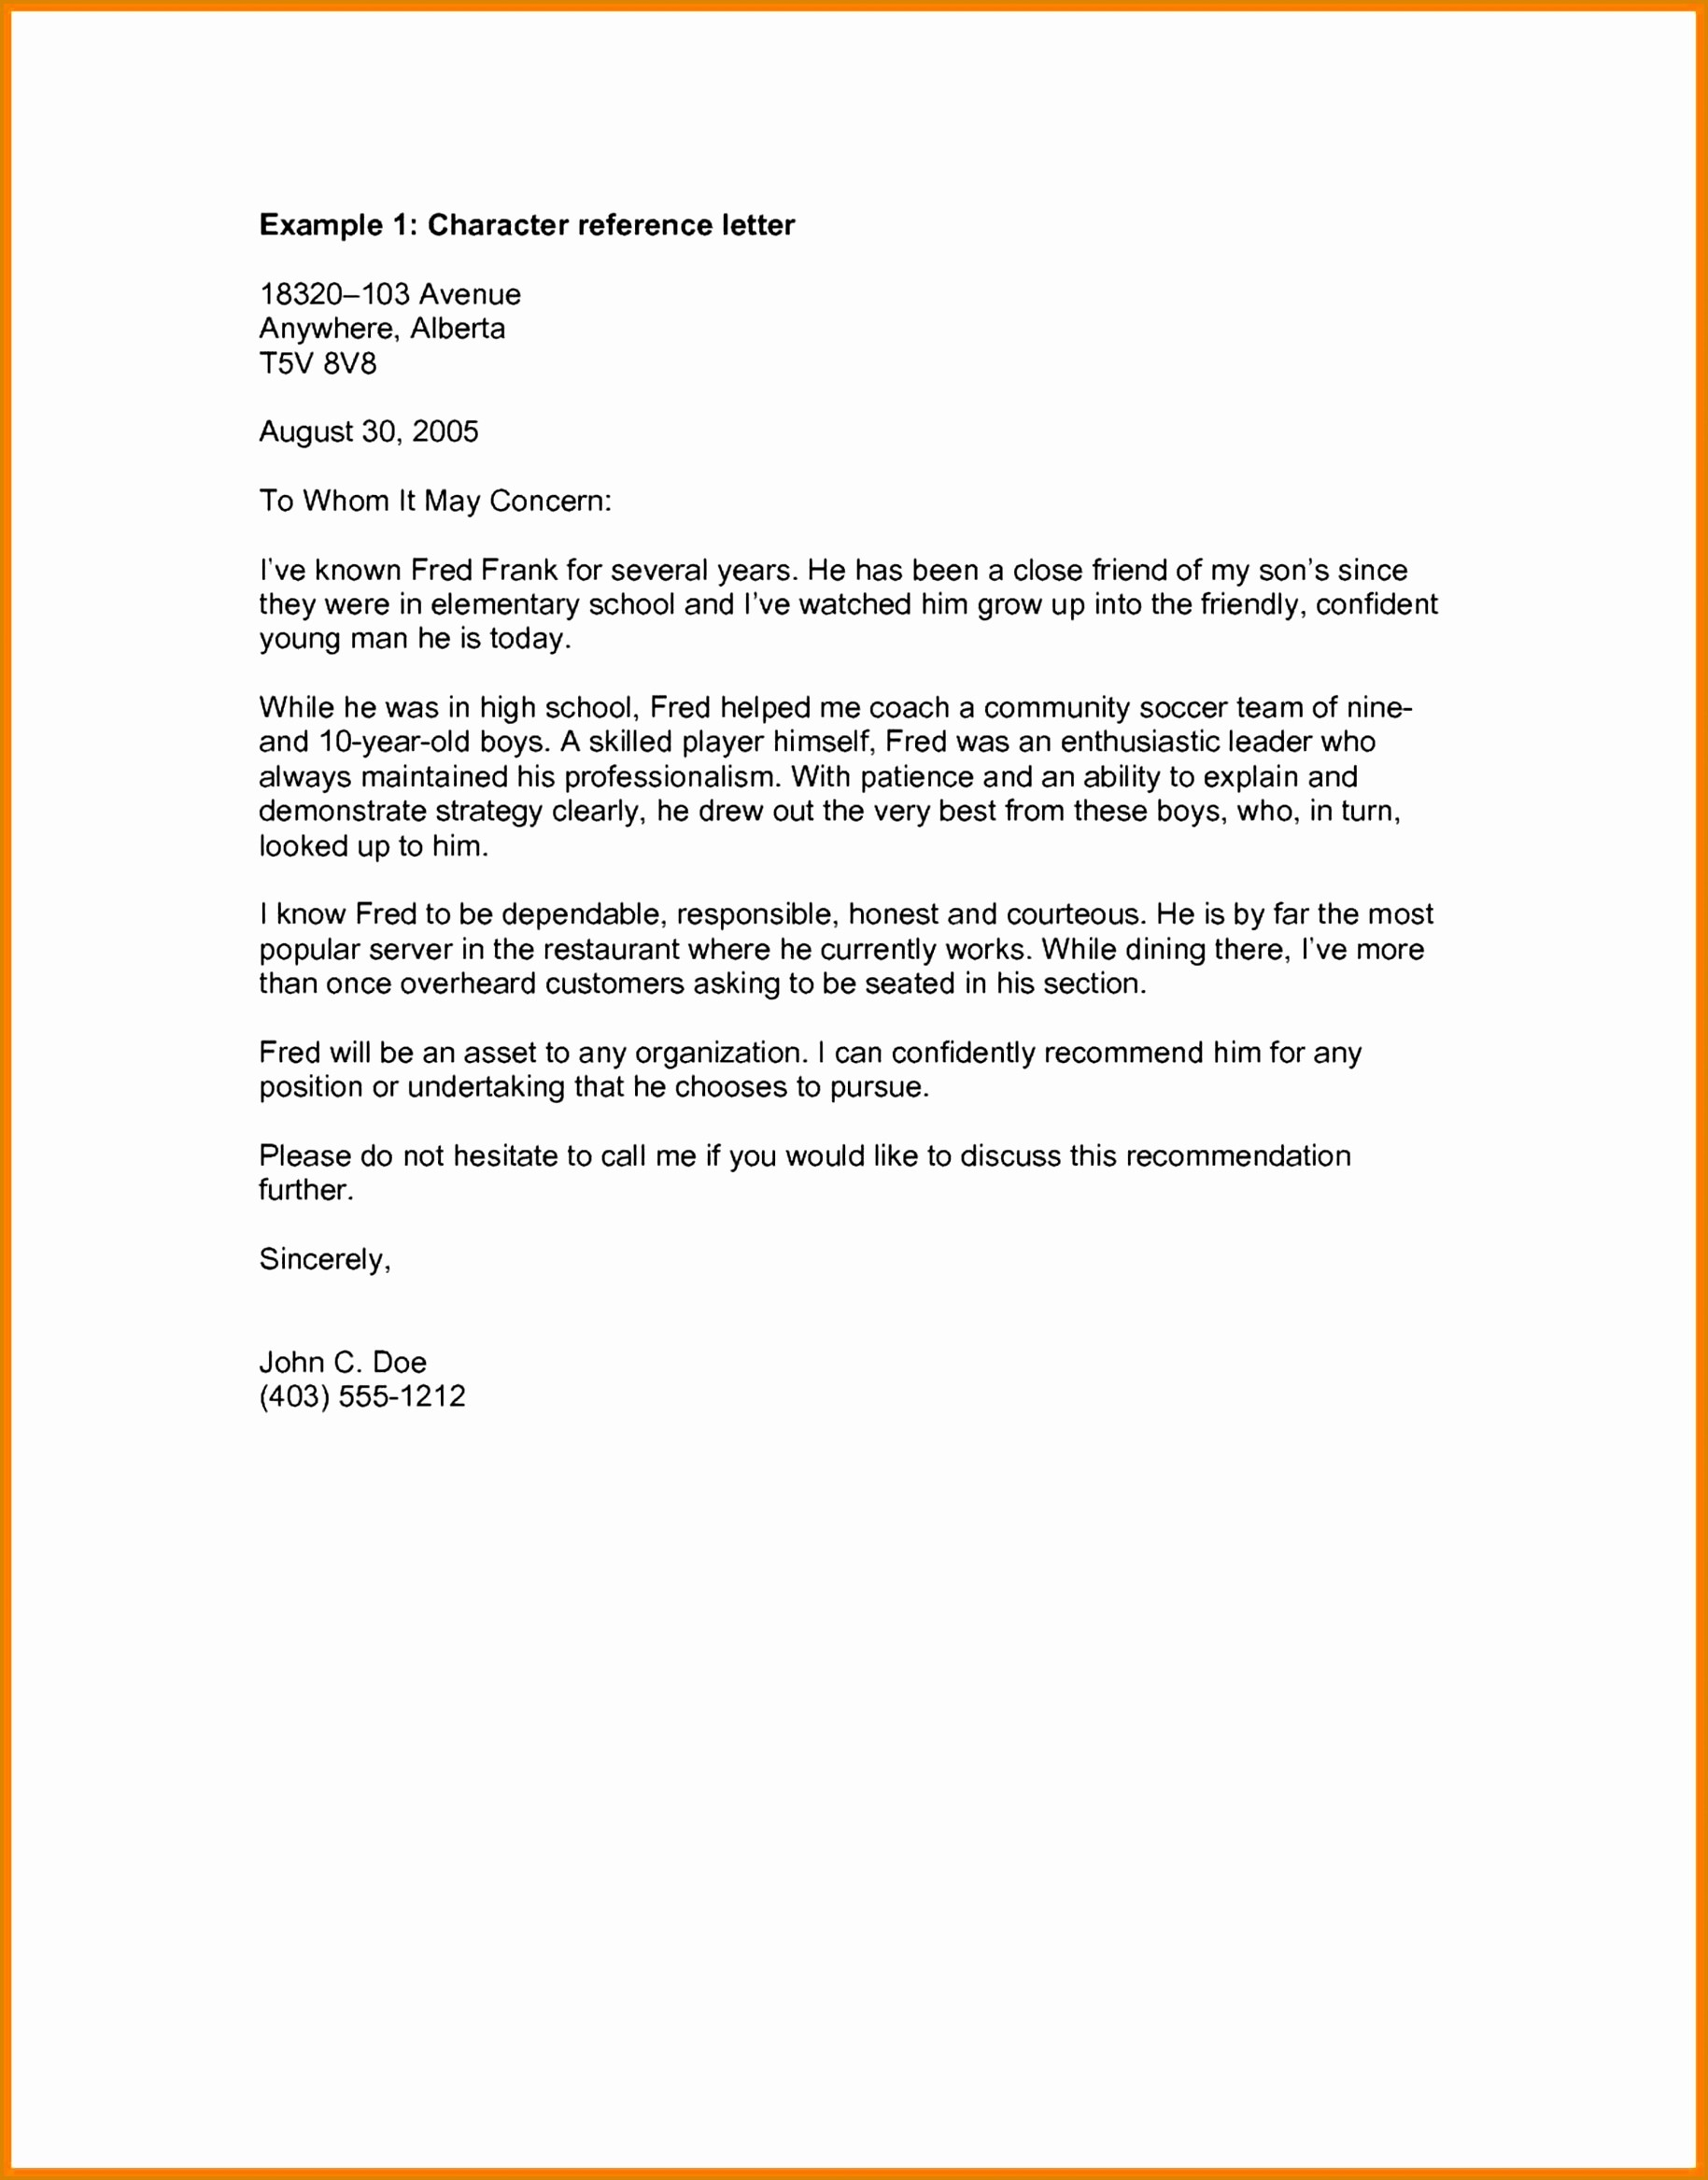 letter of engagement template contractor Collection-Engagement Letter Template Uk Best Undertaking Letter format Construction New Breach Contract New Undertaking Letter 1-a